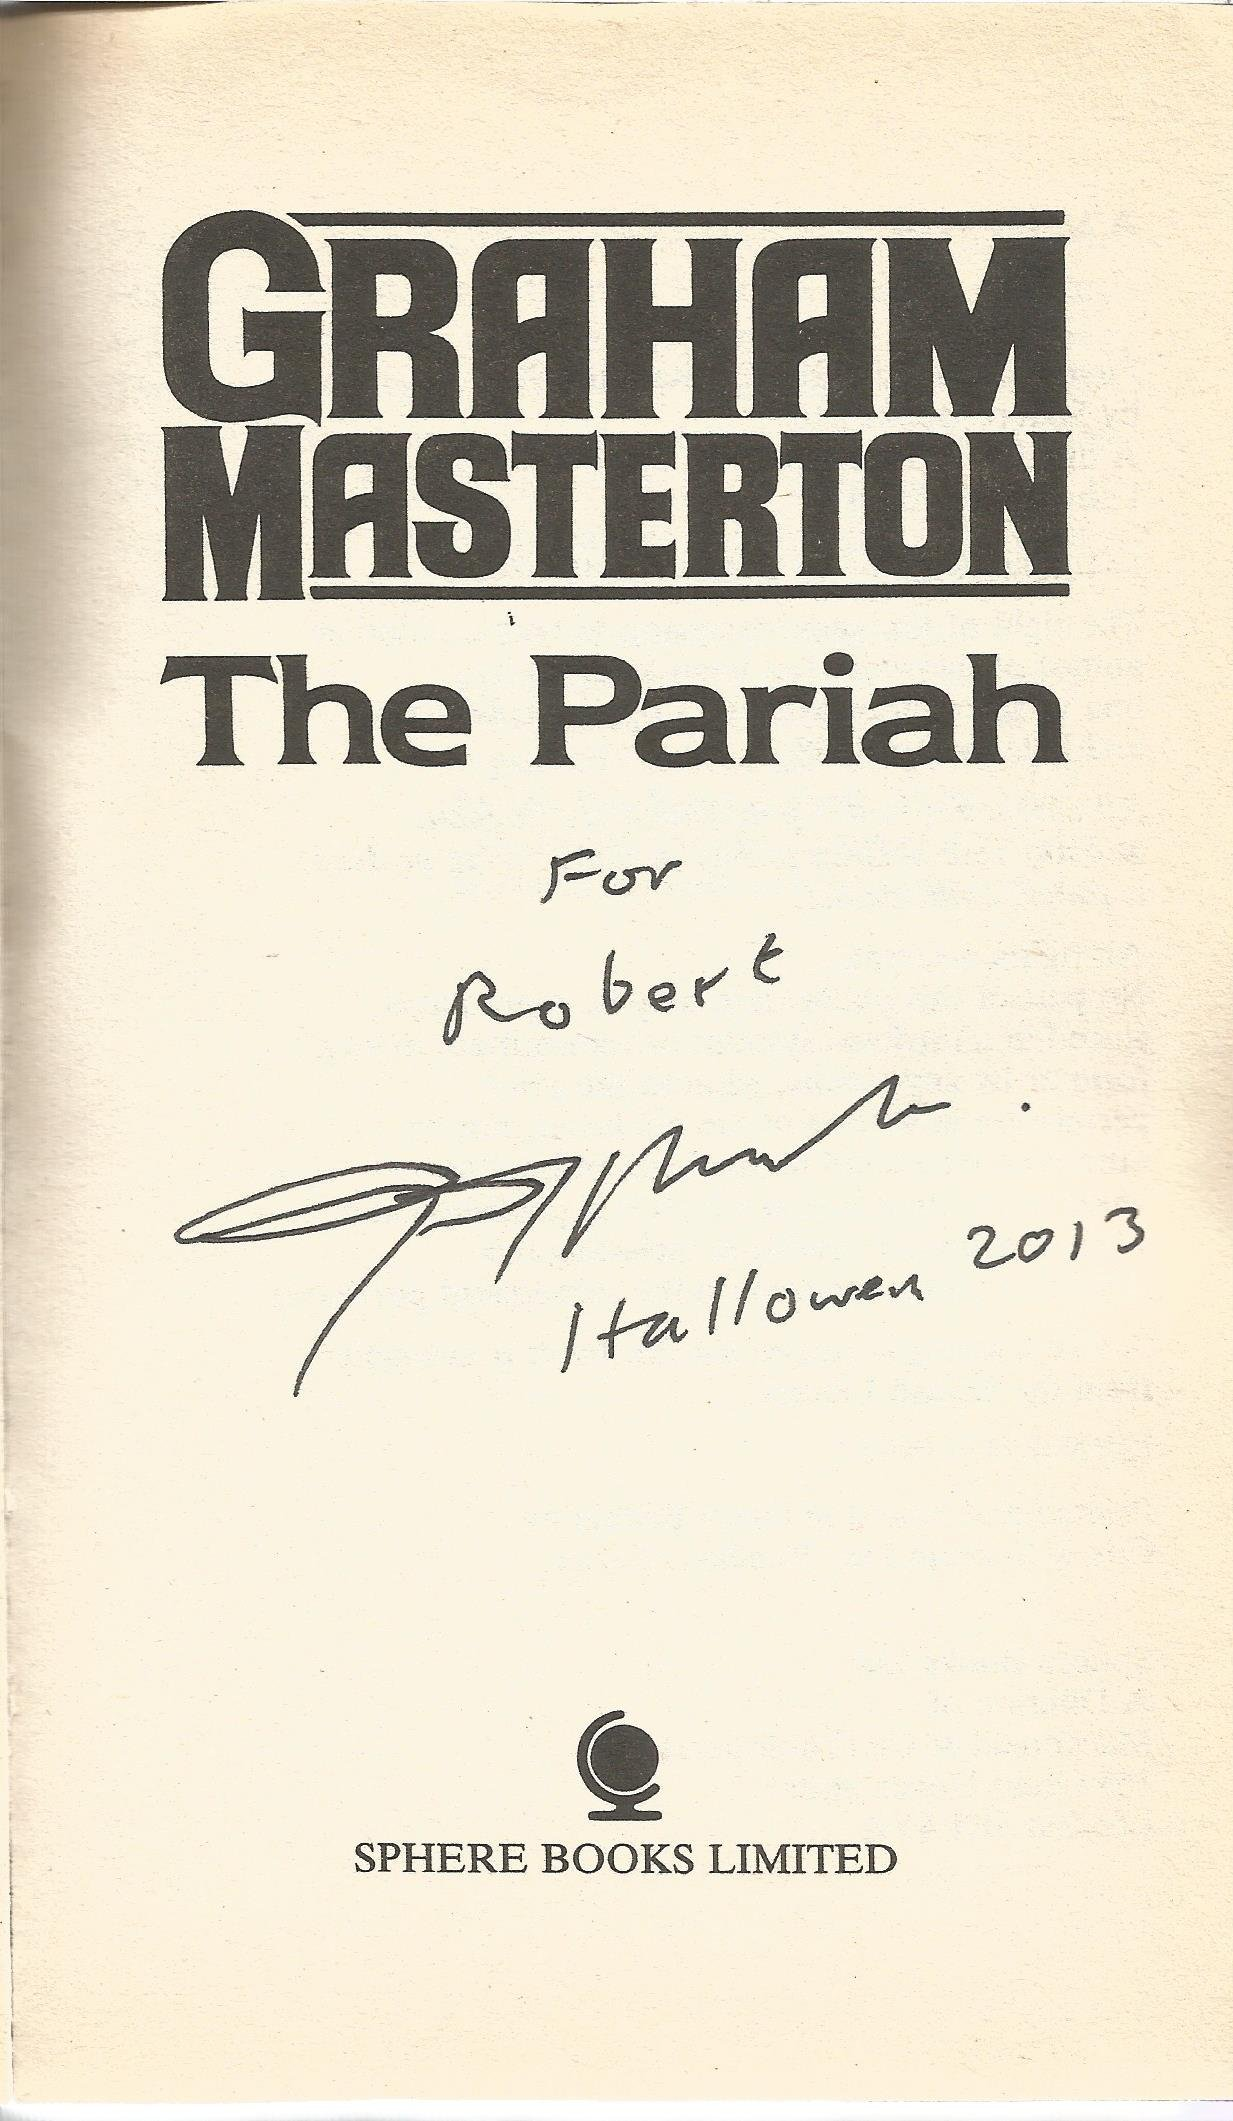 Graham Masterton signed book The Pariah Welcome to a